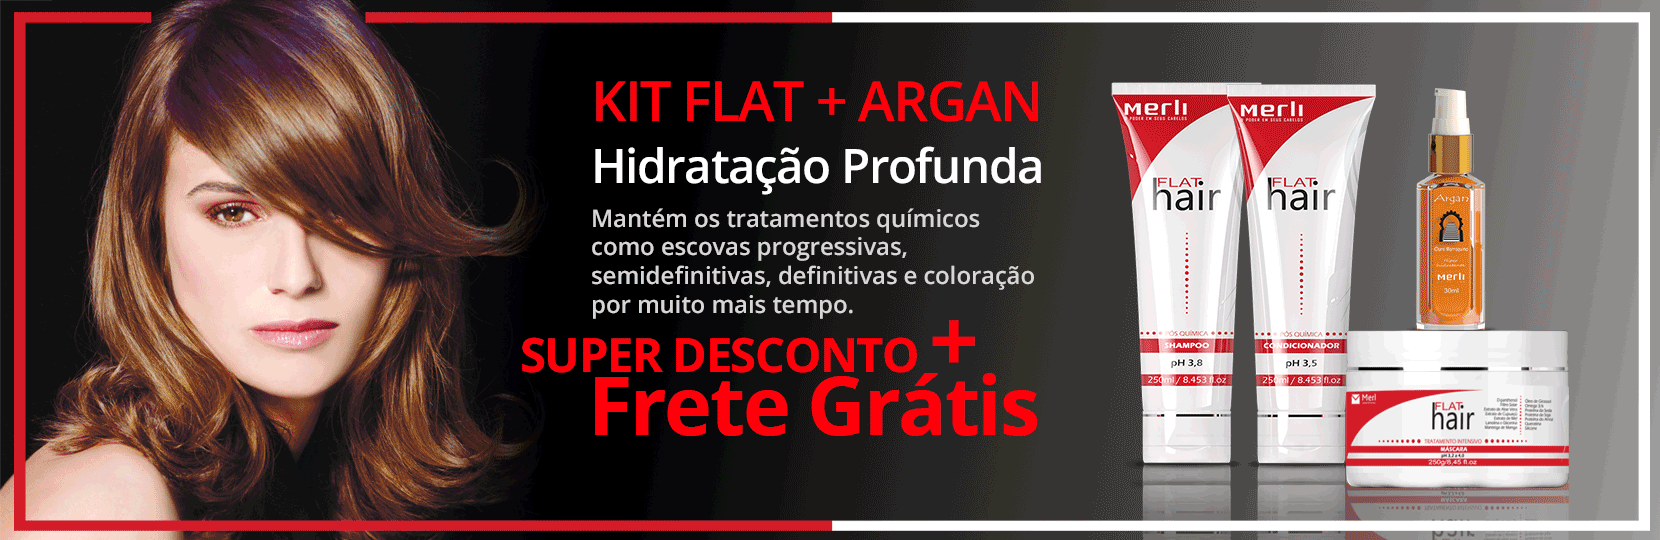 KIT FLAT+ARGAN